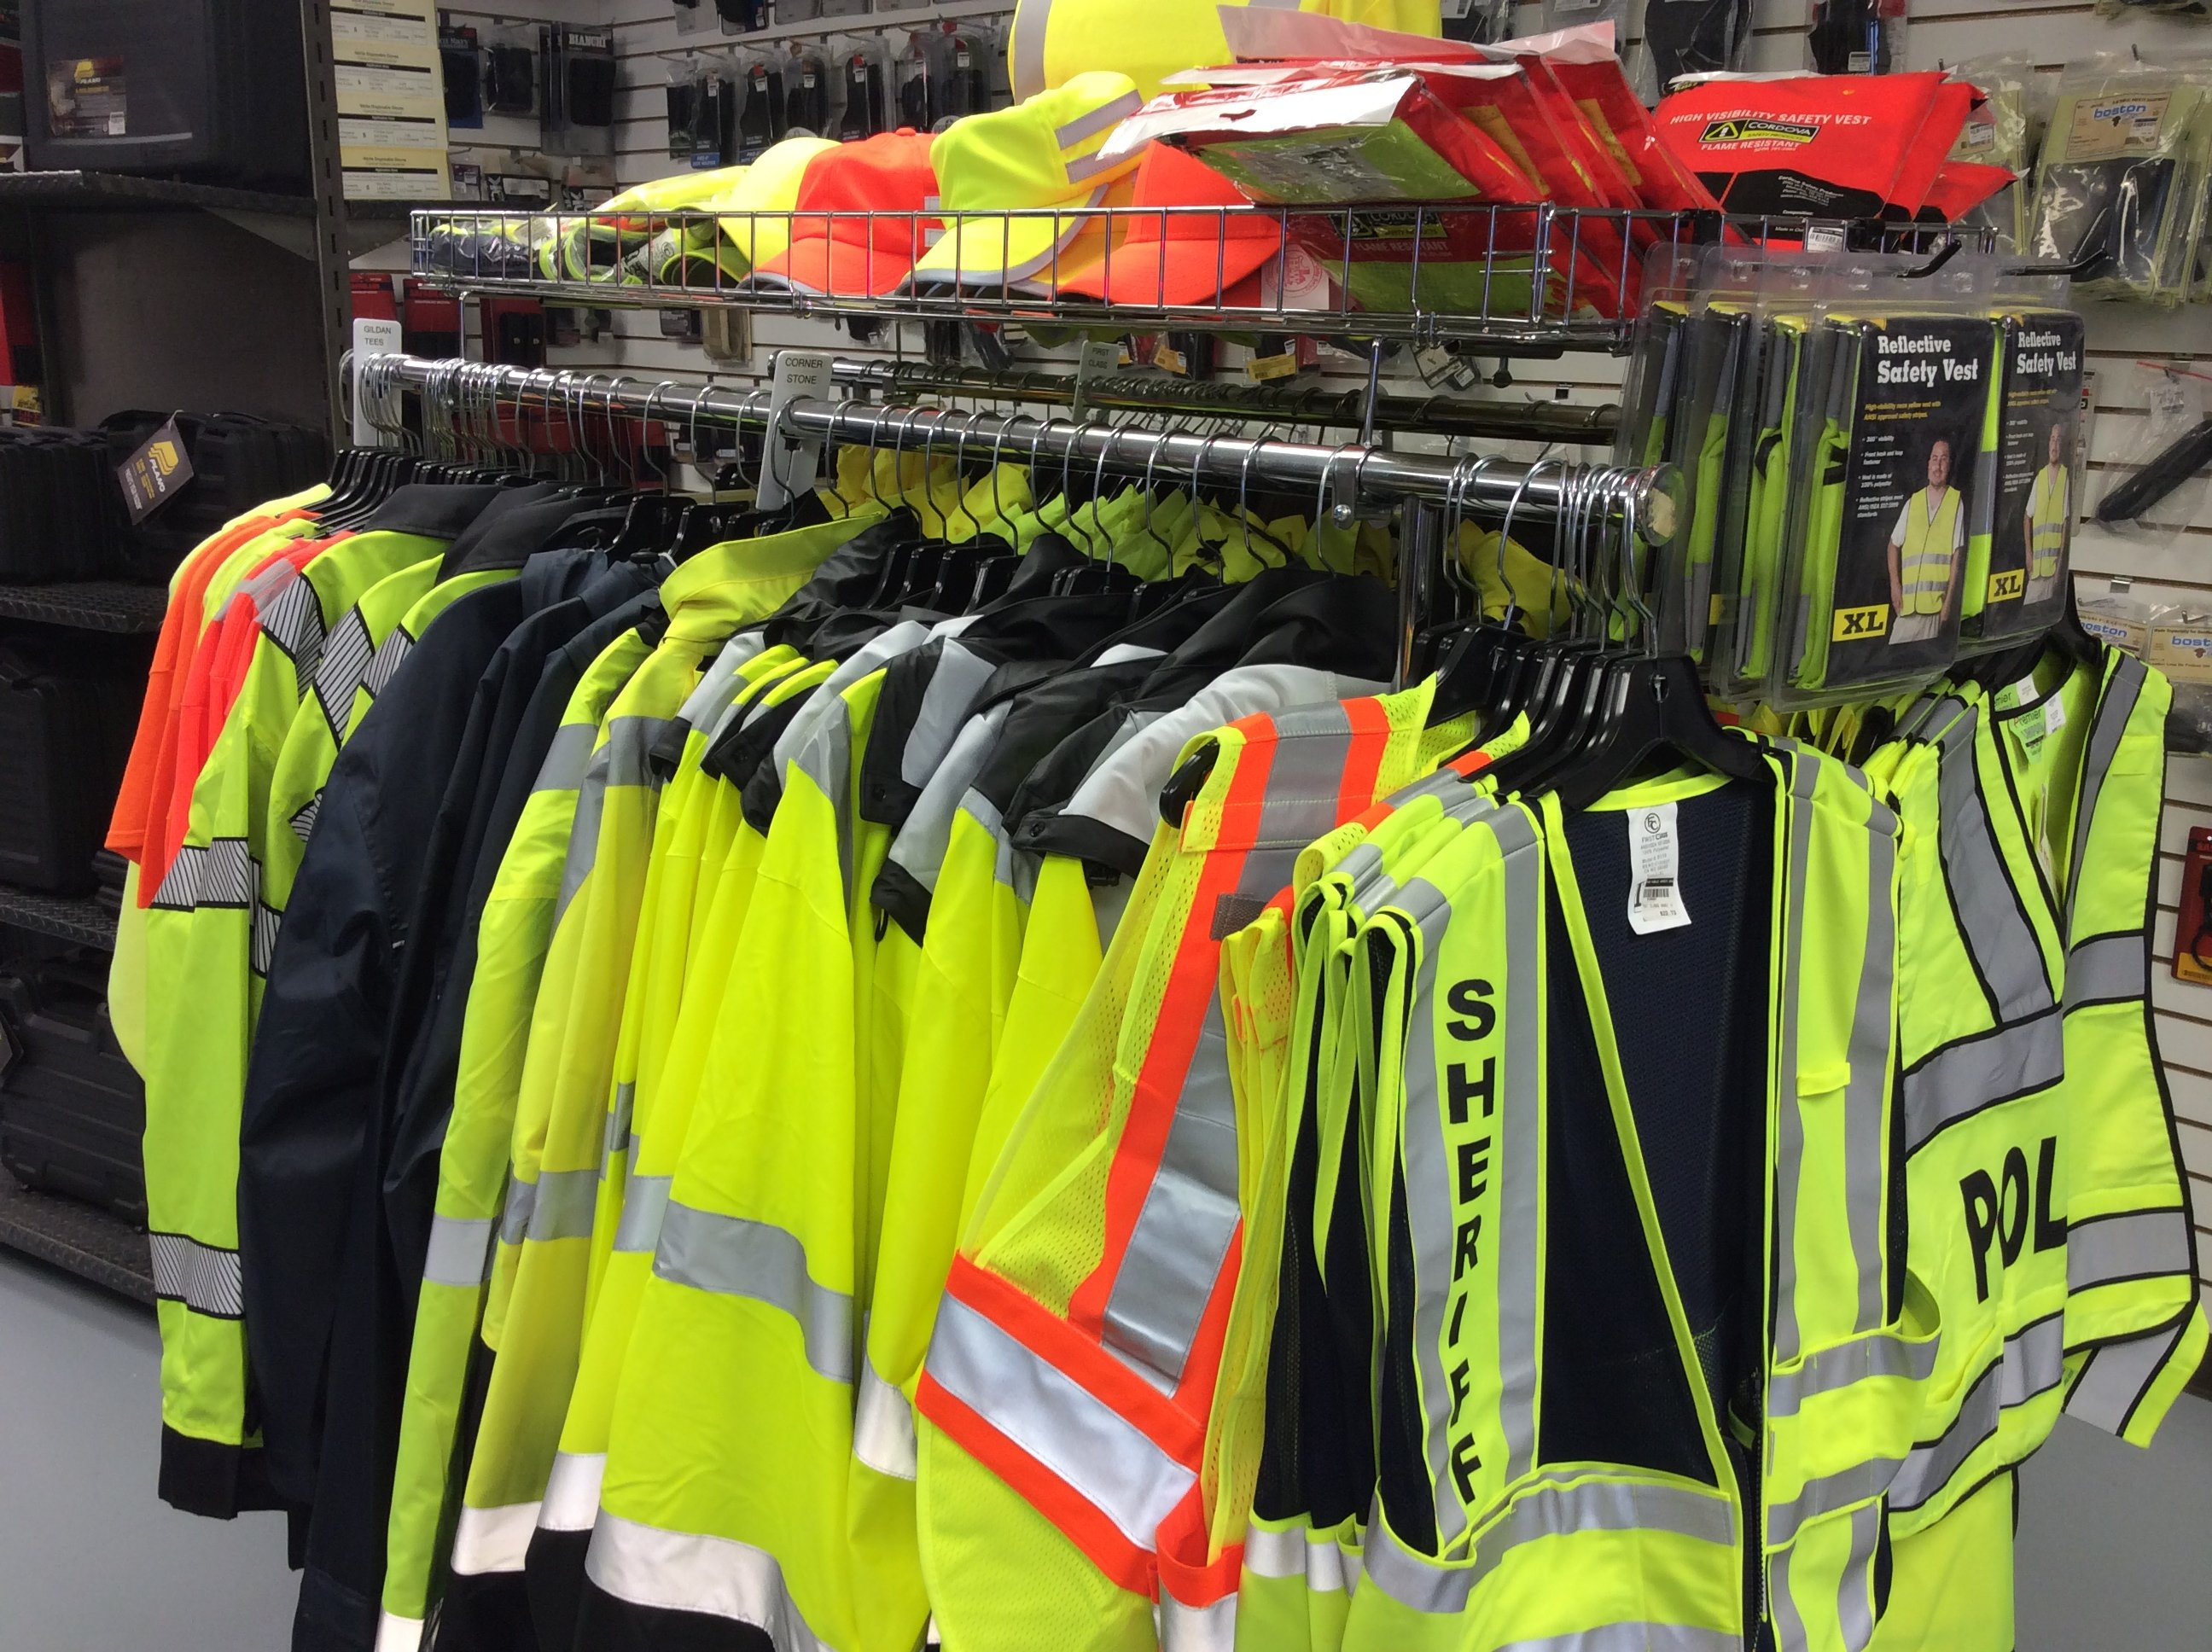 Security Uniform and Reflective Clothing